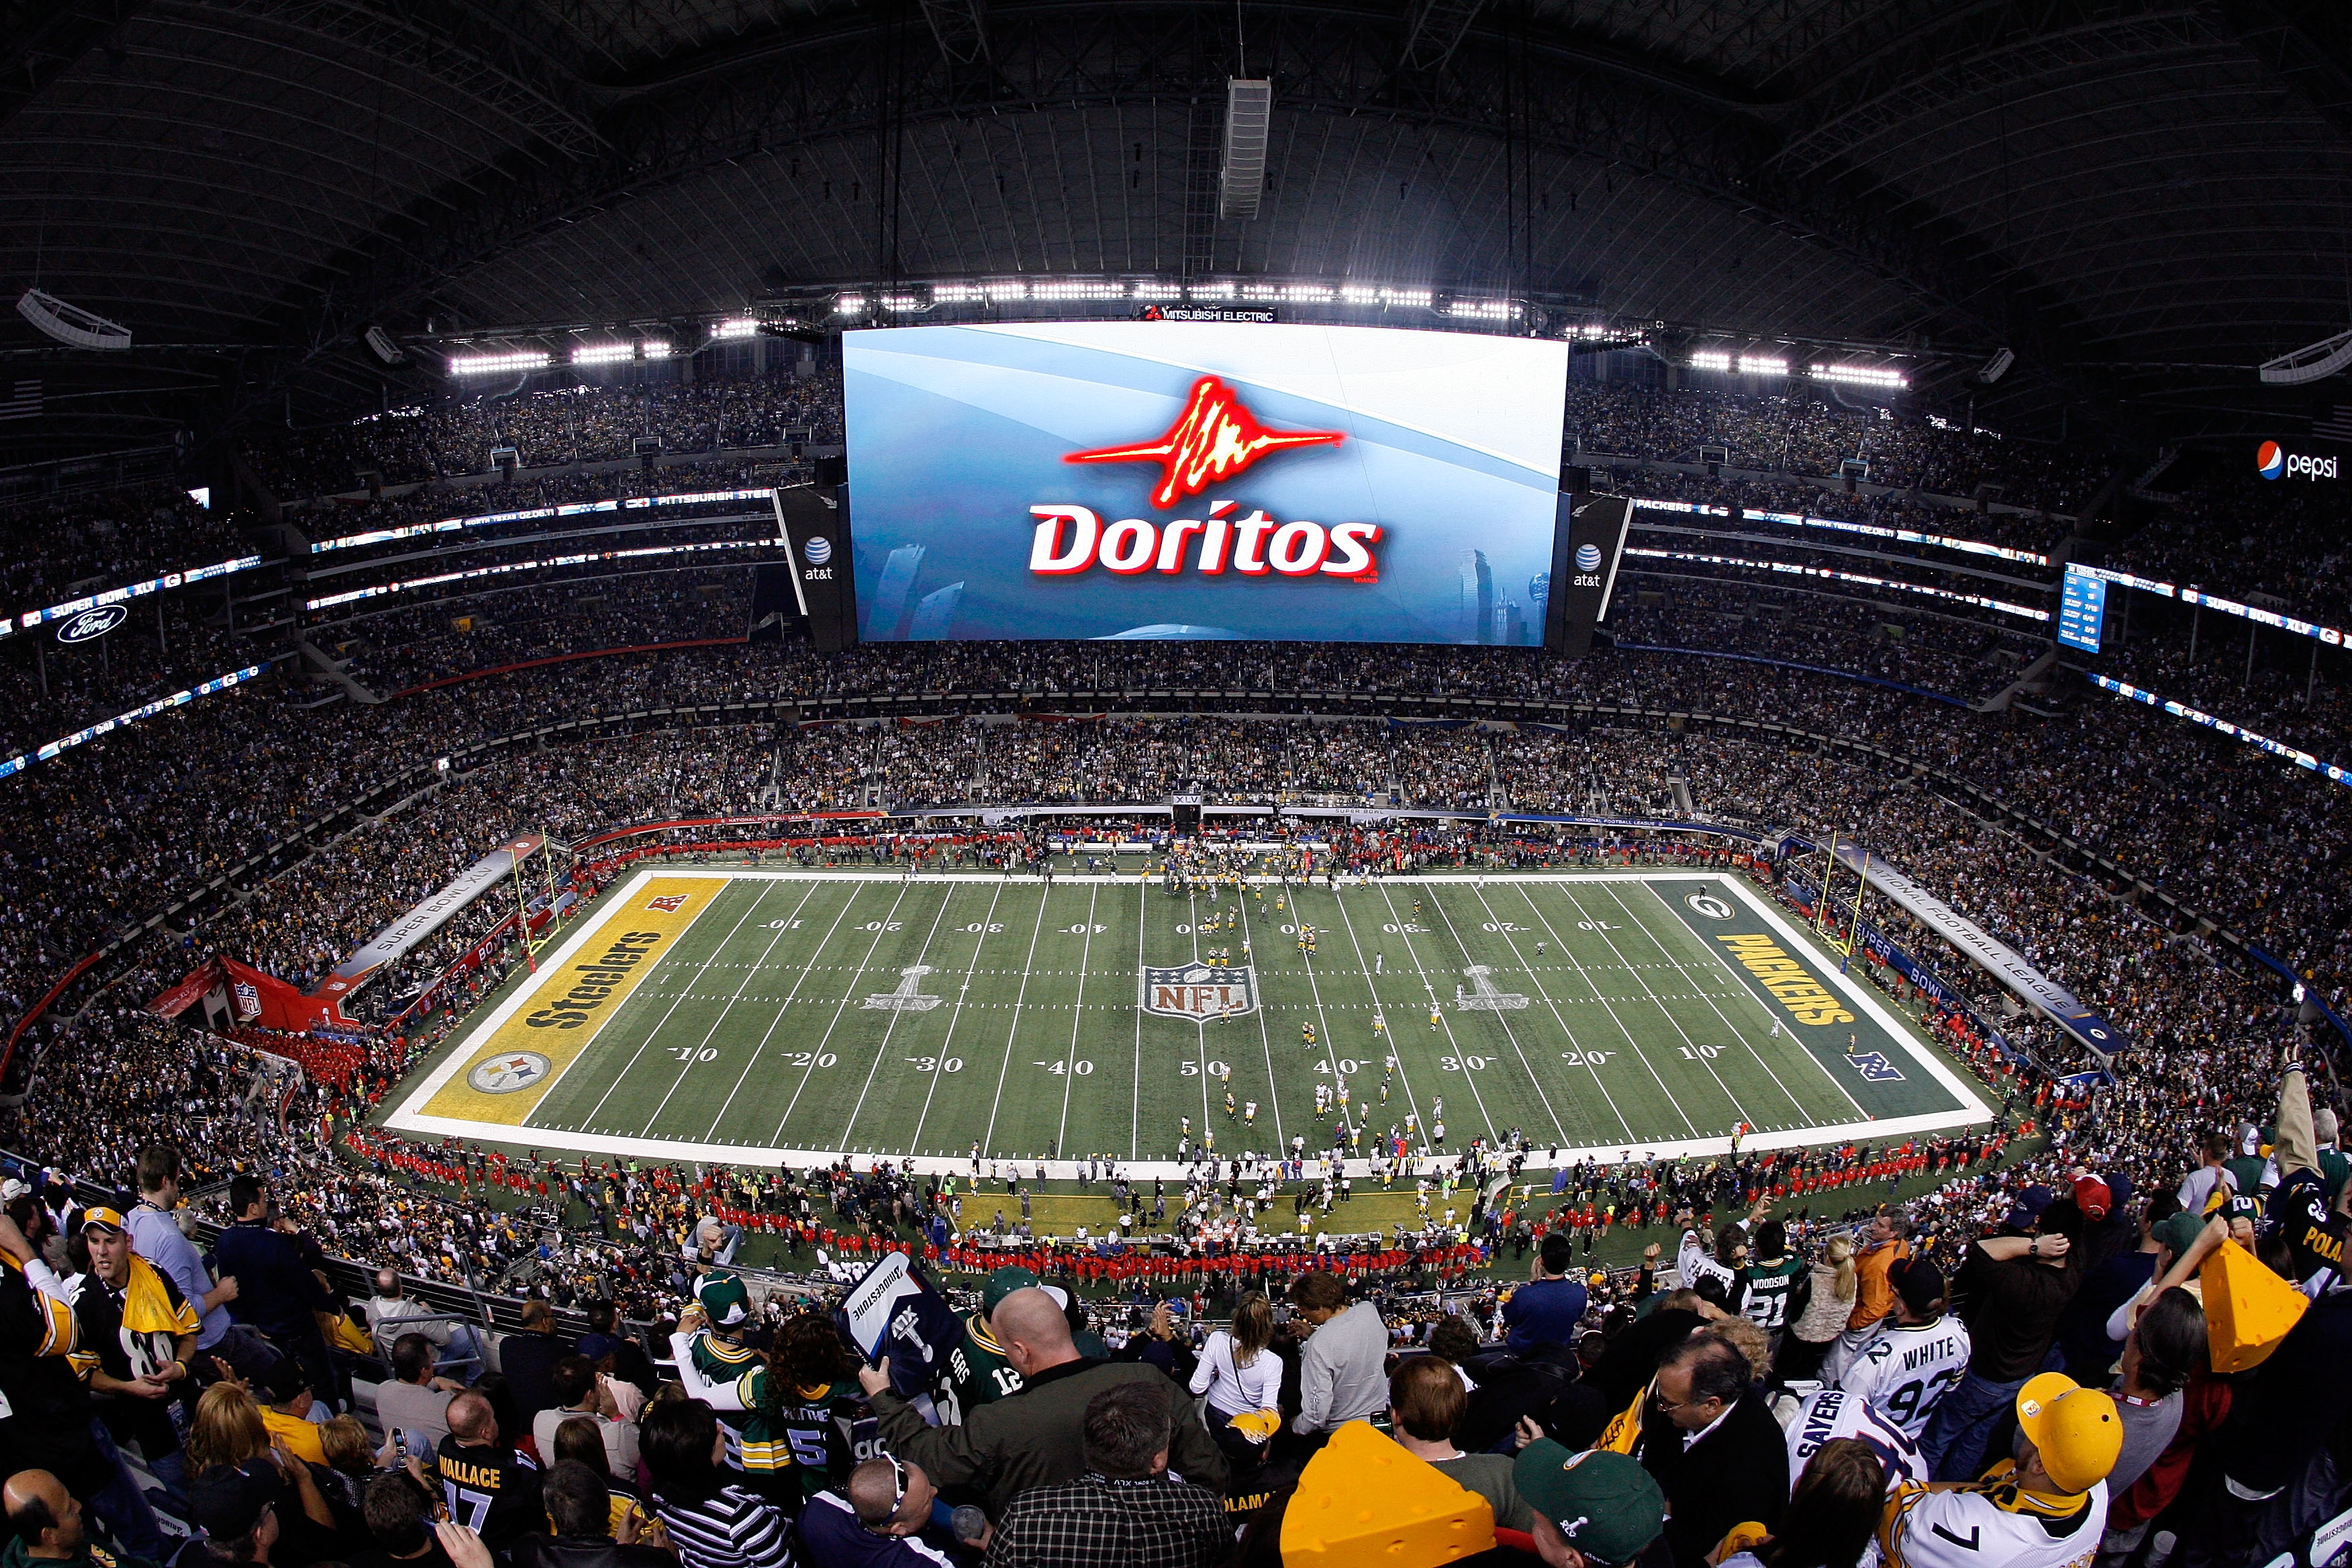 Doritos's Super Bowl ads have struck a chord with fans.